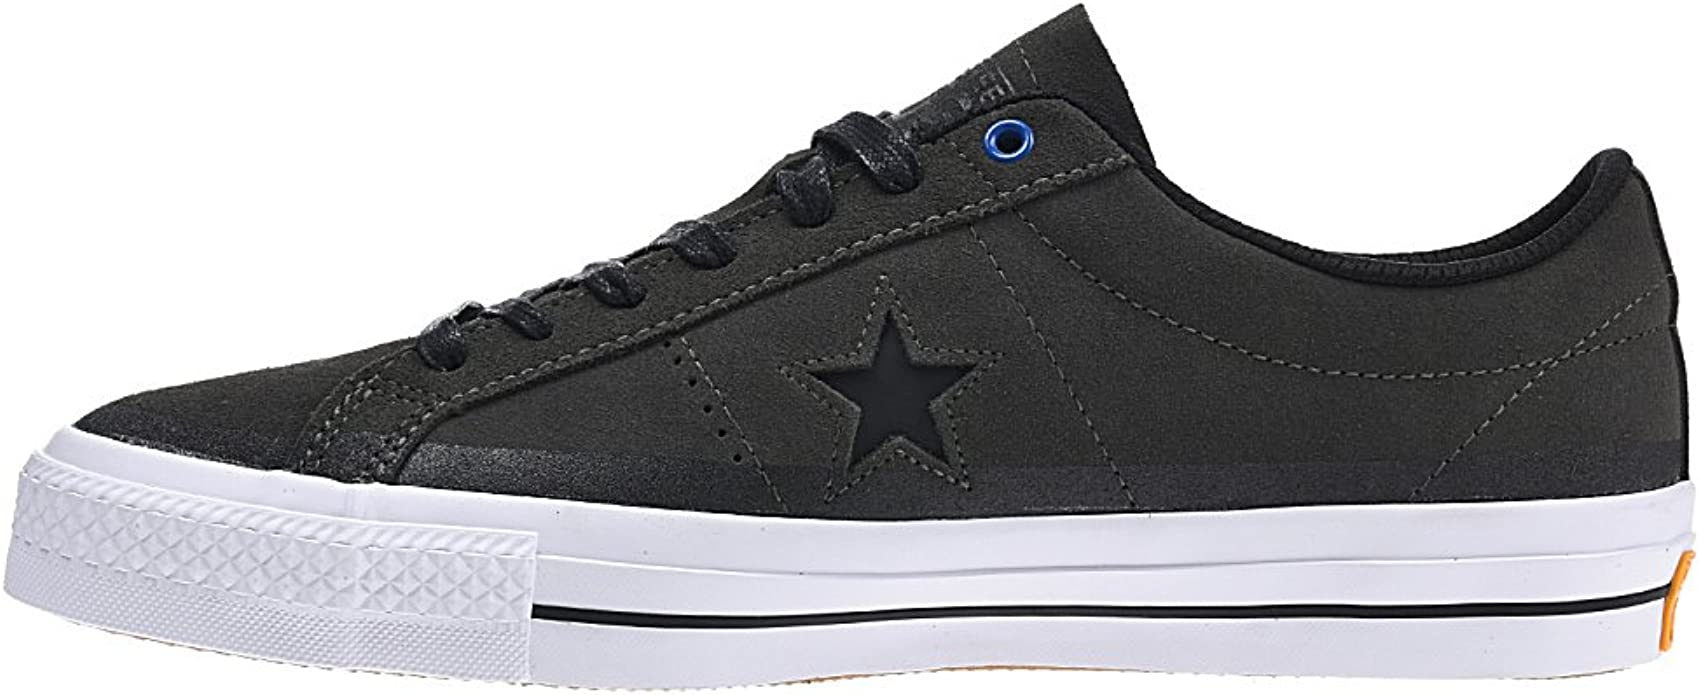 Converse Cons One Star Pro Suede OX cast iron black white